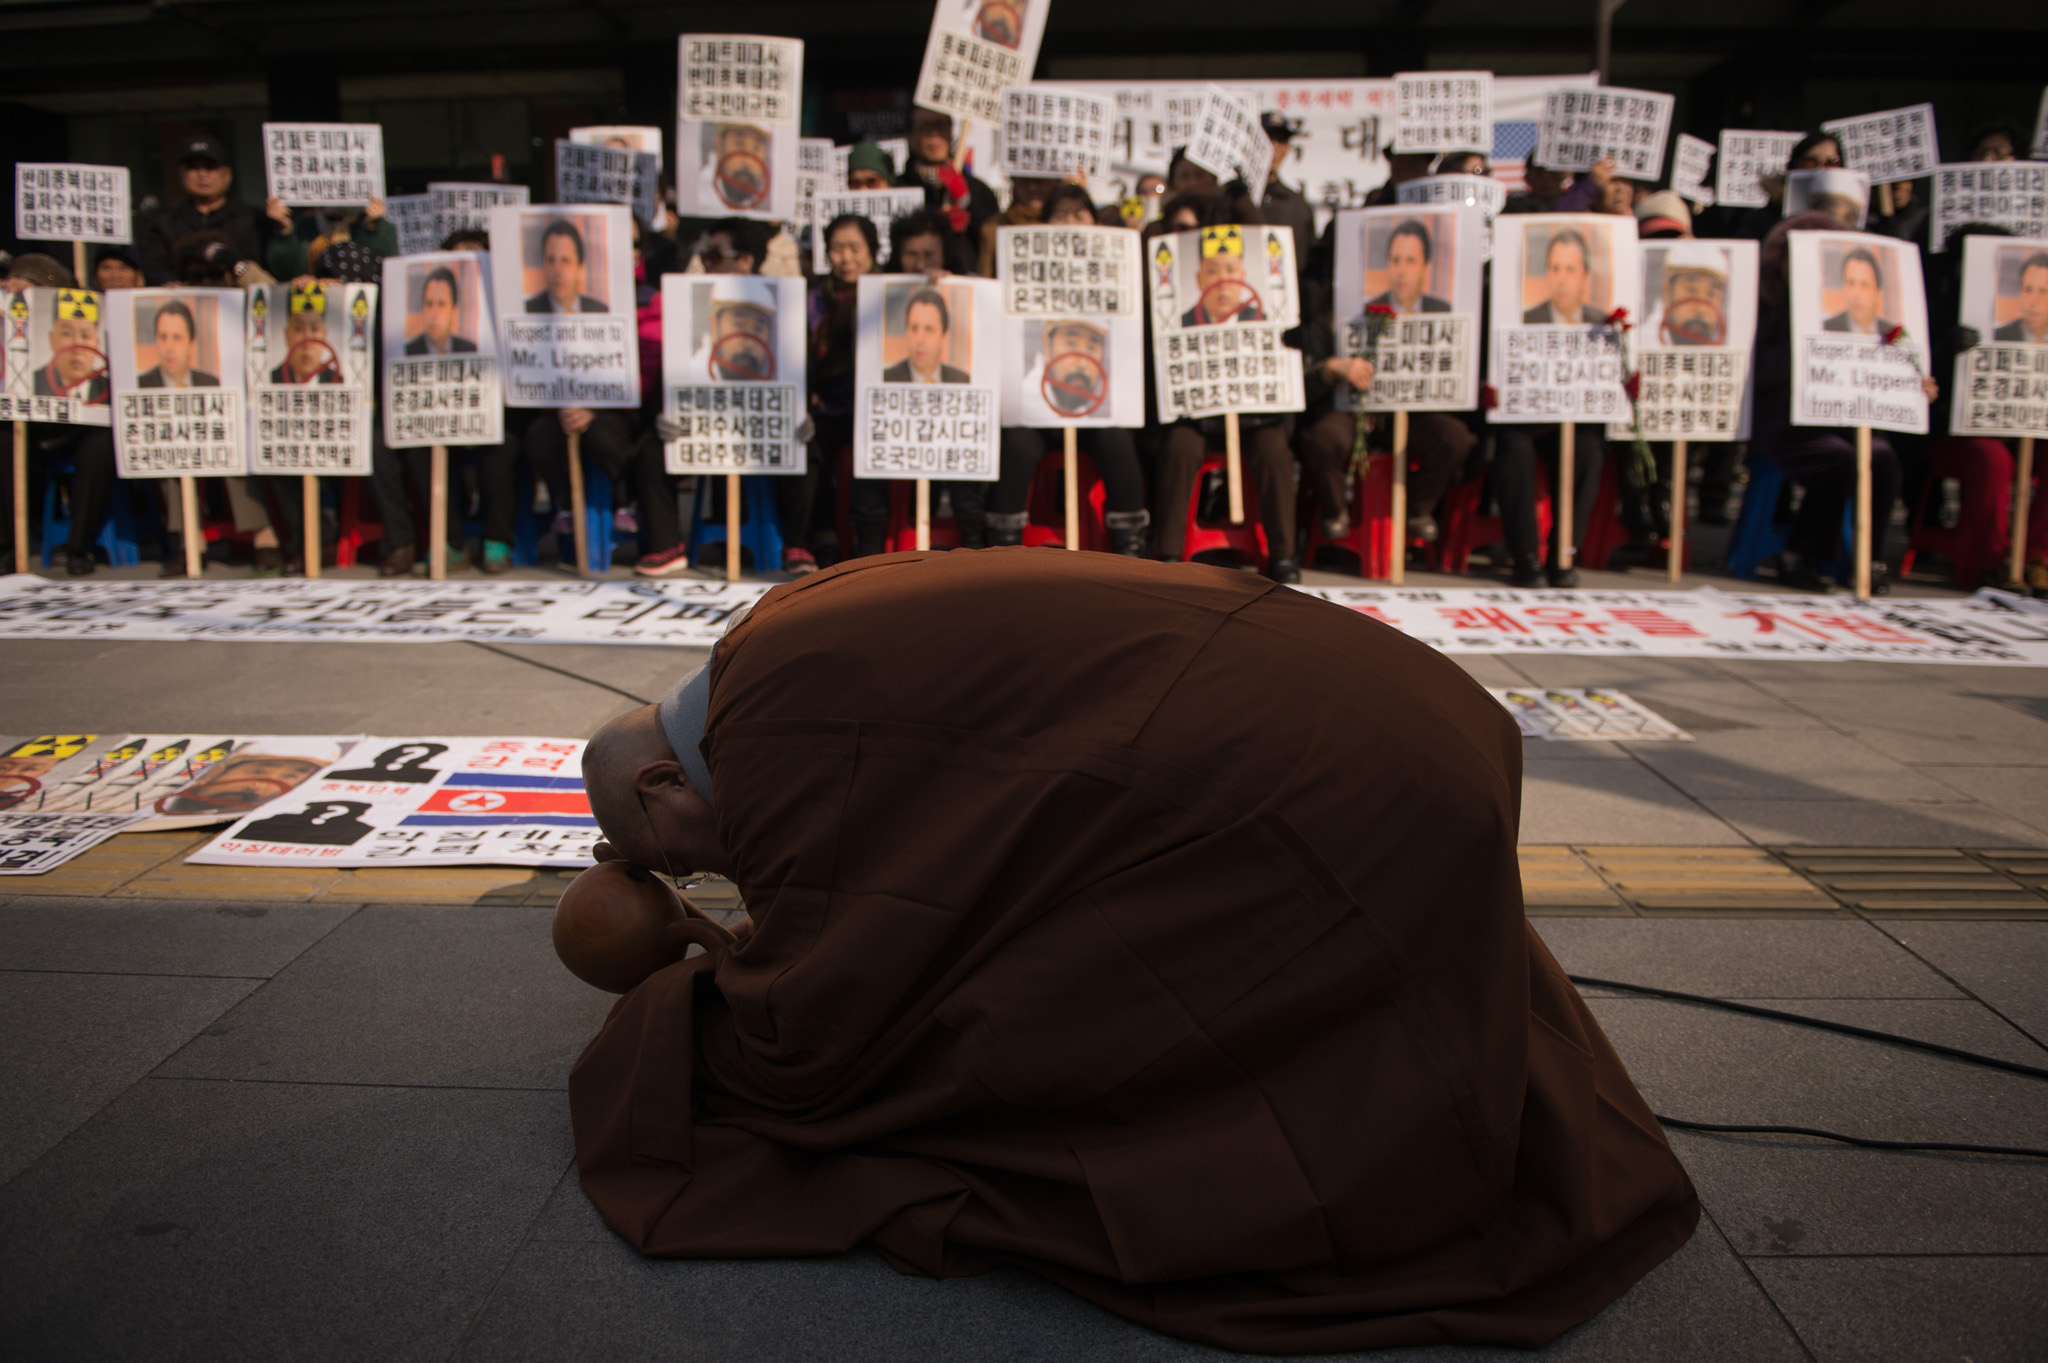 A monk prays before anti-North Korea activists holding placards in support of US Ambassador to Seoul Mark Lippert, during a rally in Seoul on March 6, 2015. South Korea has reacted with shock and a little shame to a violent knife attack on Lippert that jarred harshly with the image of a largely safe, well-ordered society.